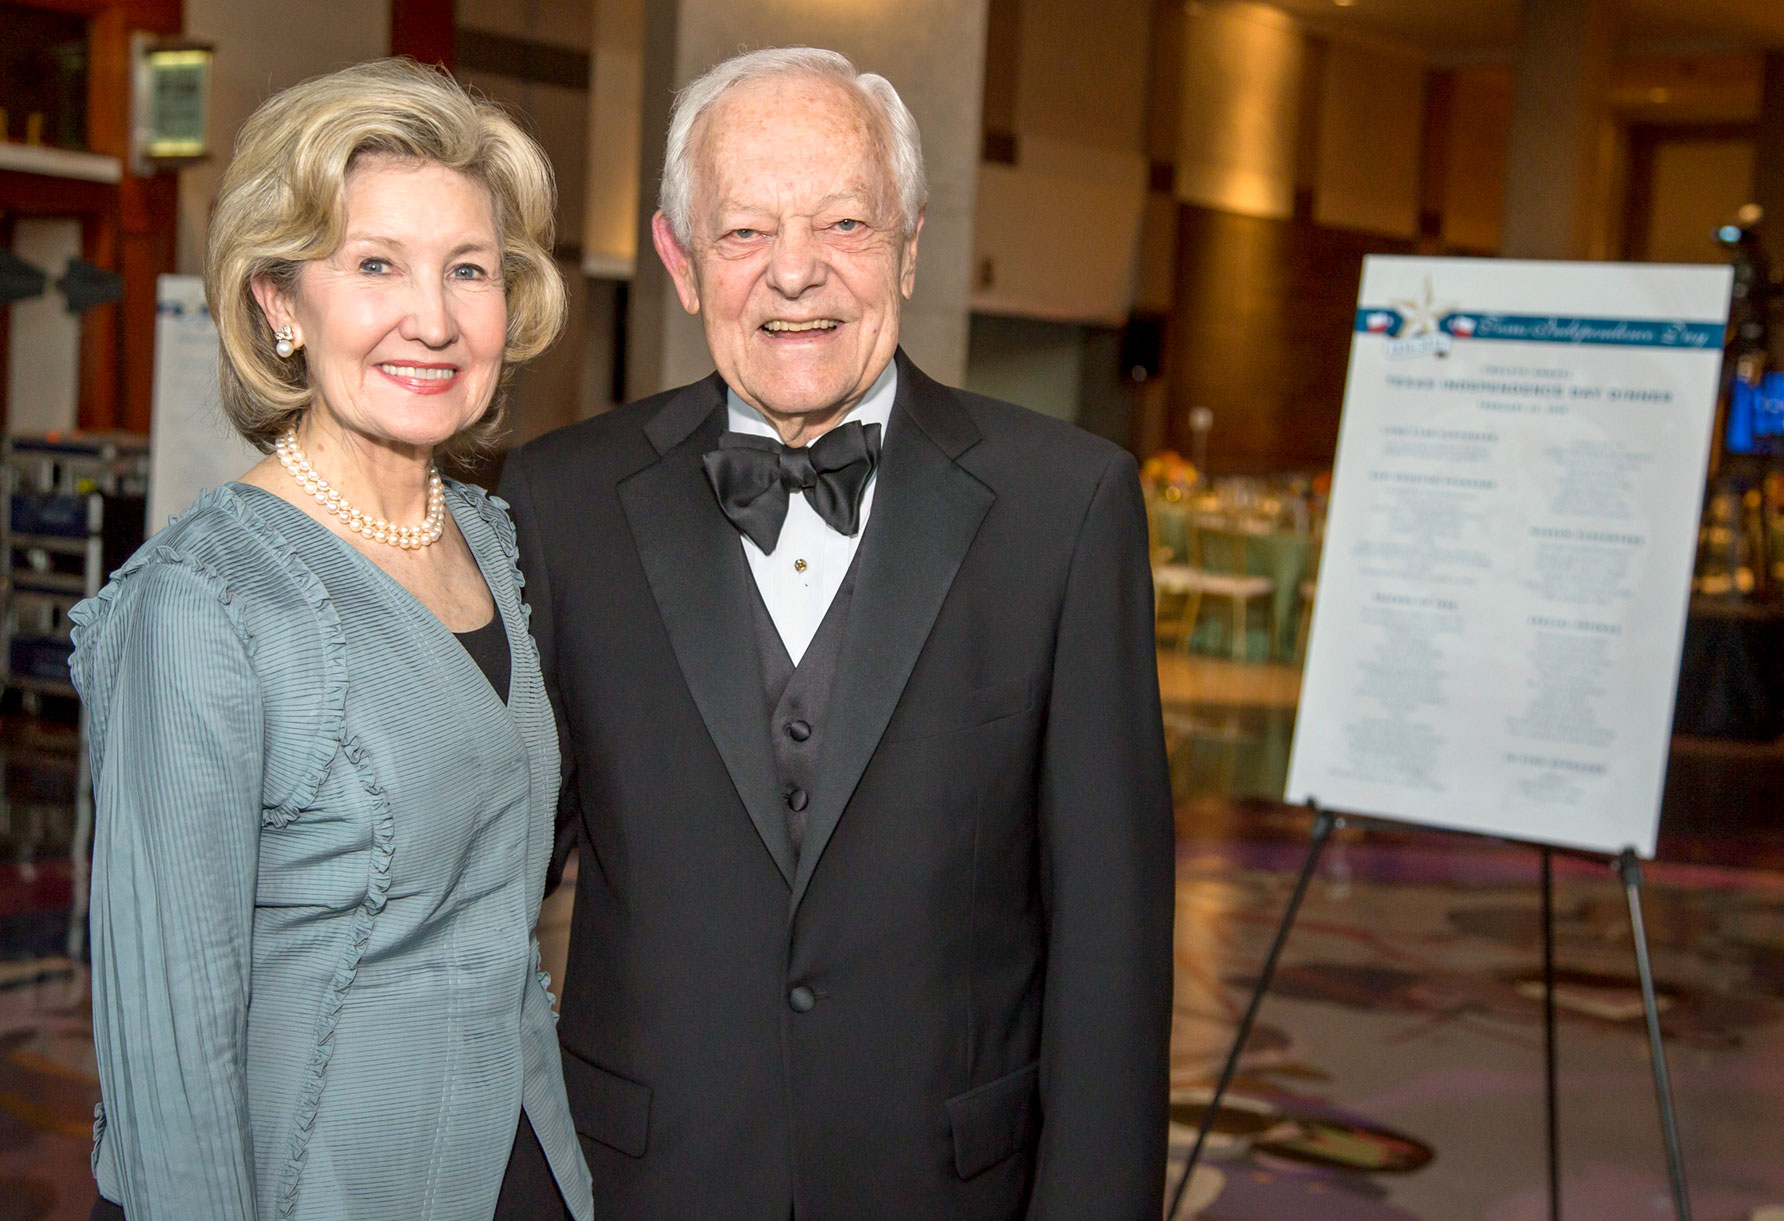 The annual History-Making Texans Awards Dinner was held last month in Austin and honored Senator Kay Bailey Hutchison and Bob Schieffer. Photo Courtesy Chris Caselli.